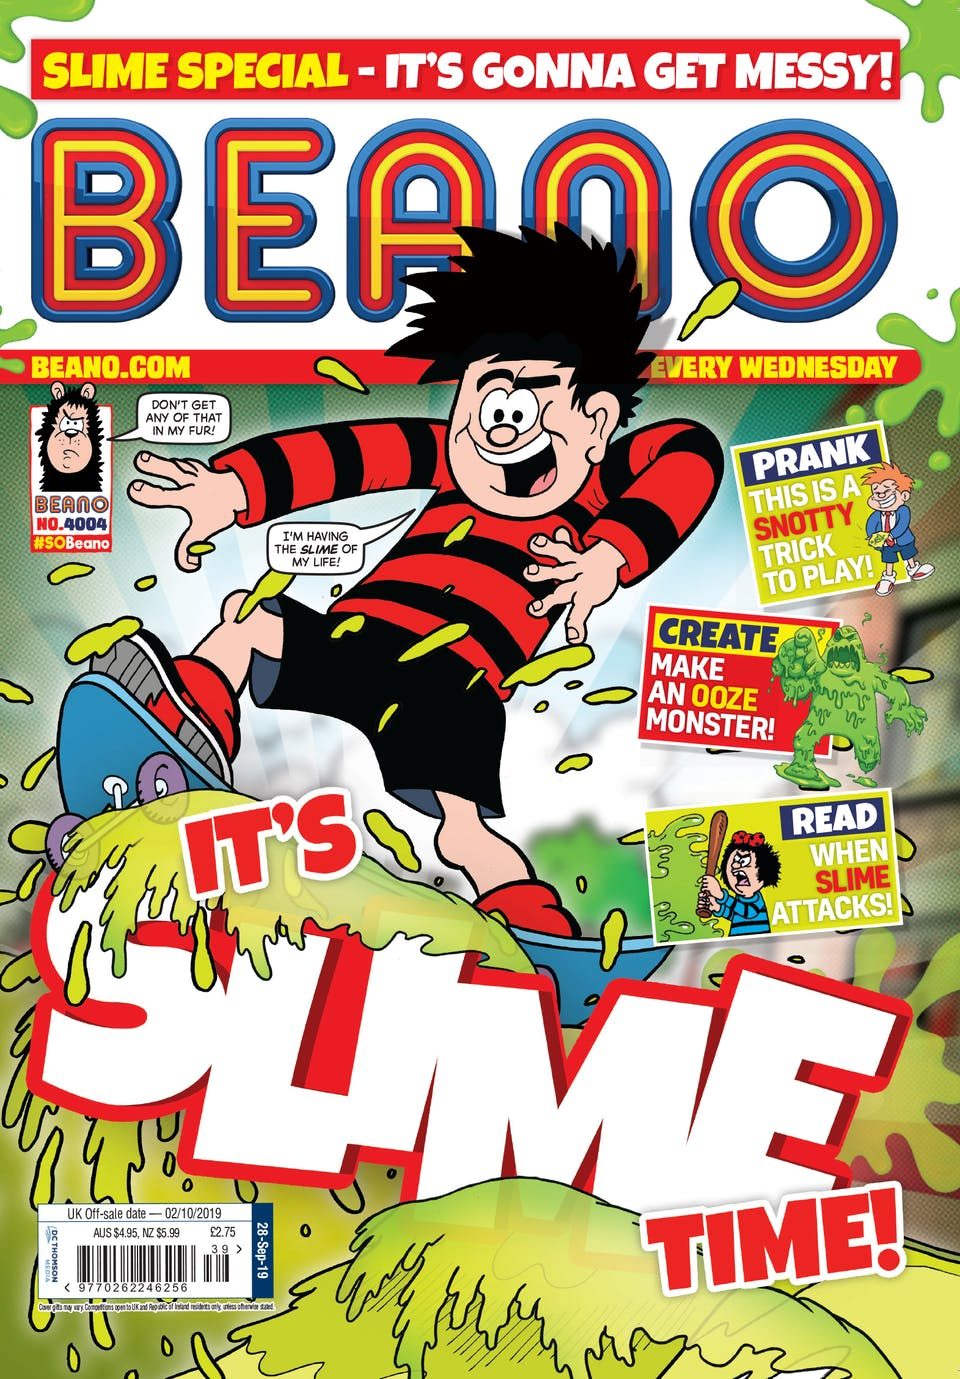 Inside Beano 4004 - It's Slime Time!